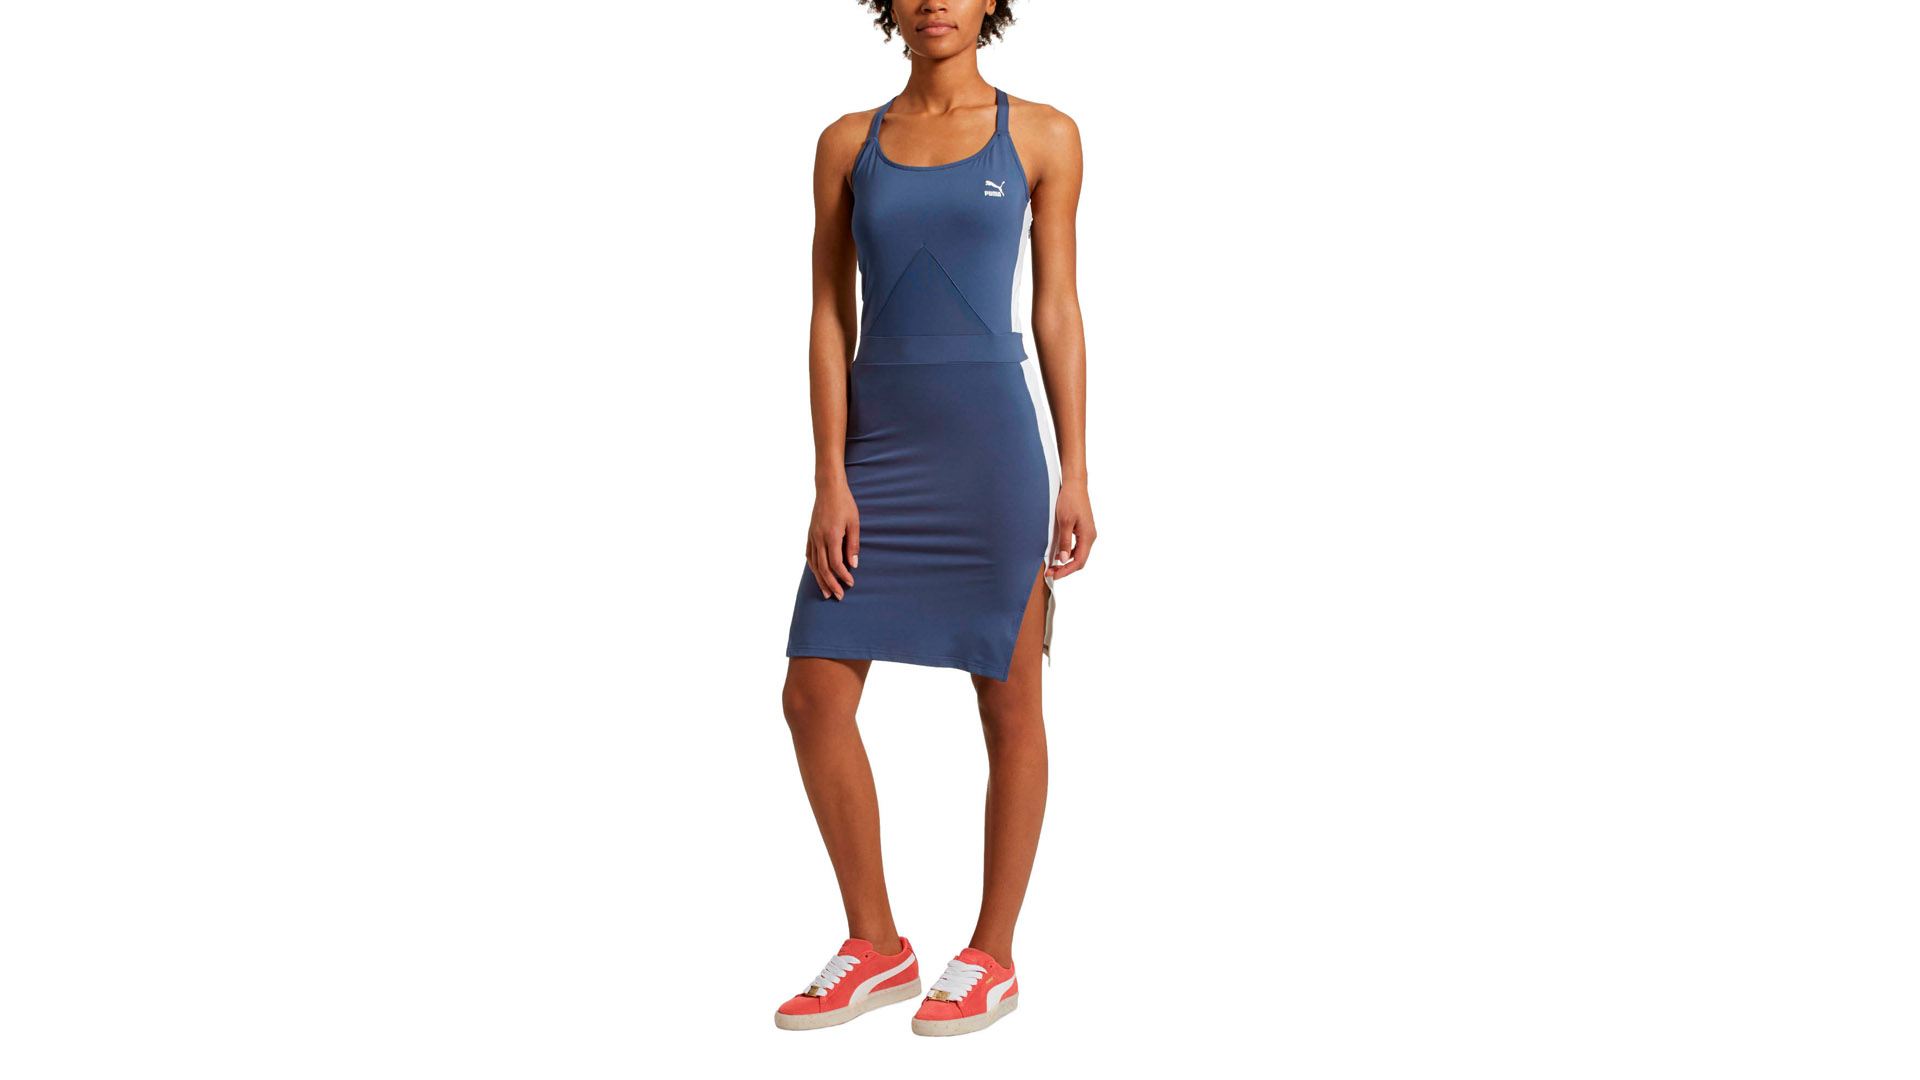 PUMA Archive T7 Dress Is One Of The 5 Things Sports Moms Would Love